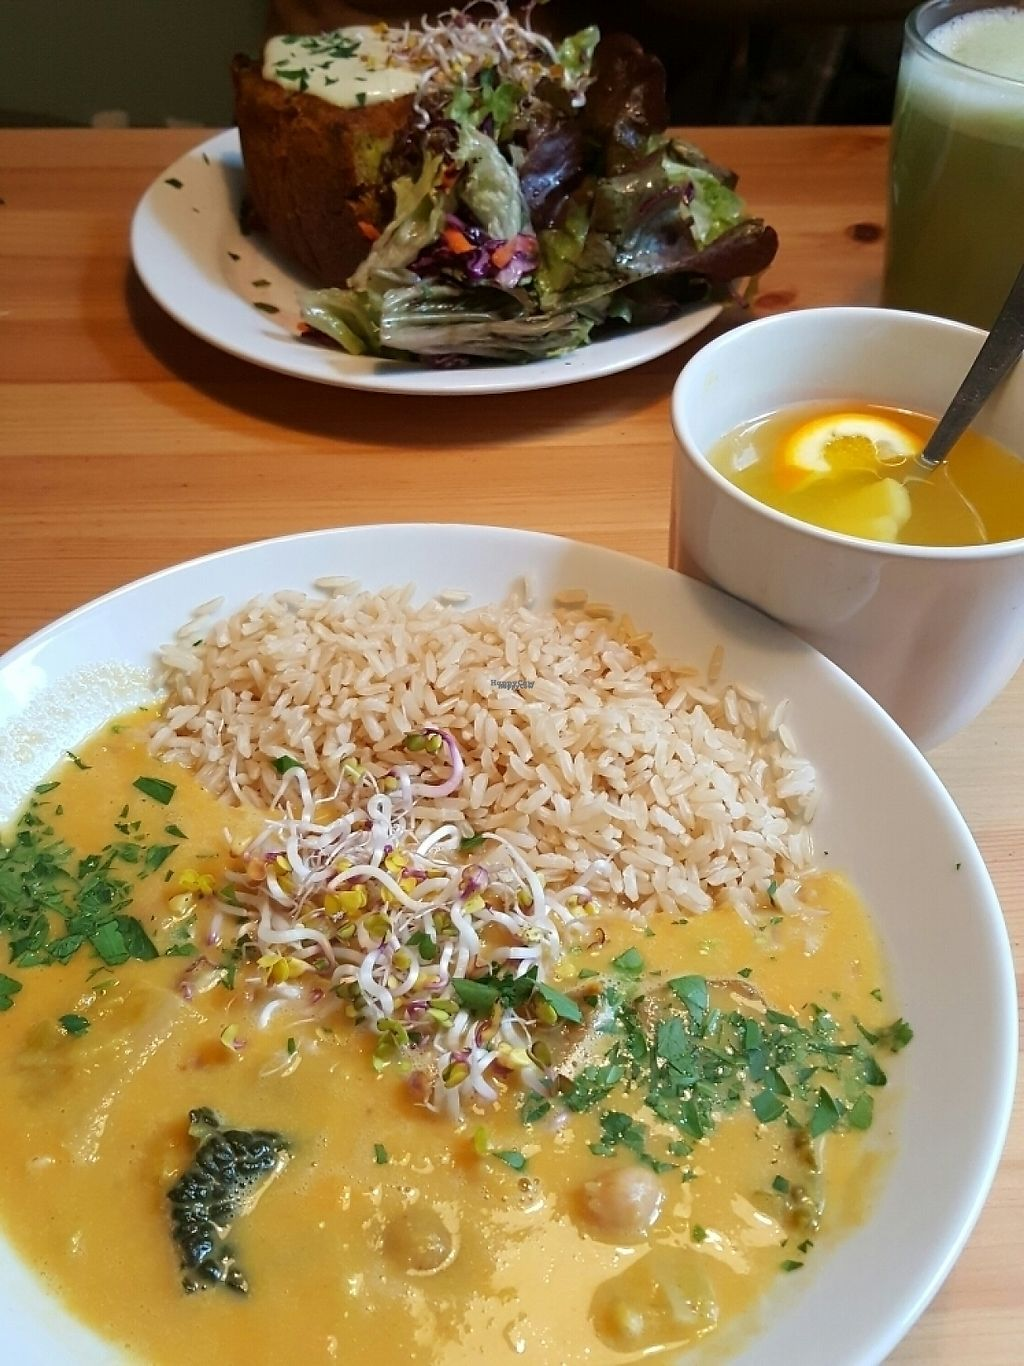 """Photo of HappenPappen  by <a href=""""/members/profile/veganverayo"""">veganverayo</a> <br/>The menue changes daily. So delicious! <br/> April 14, 2017  - <a href='/contact/abuse/image/41221/247781'>Report</a>"""